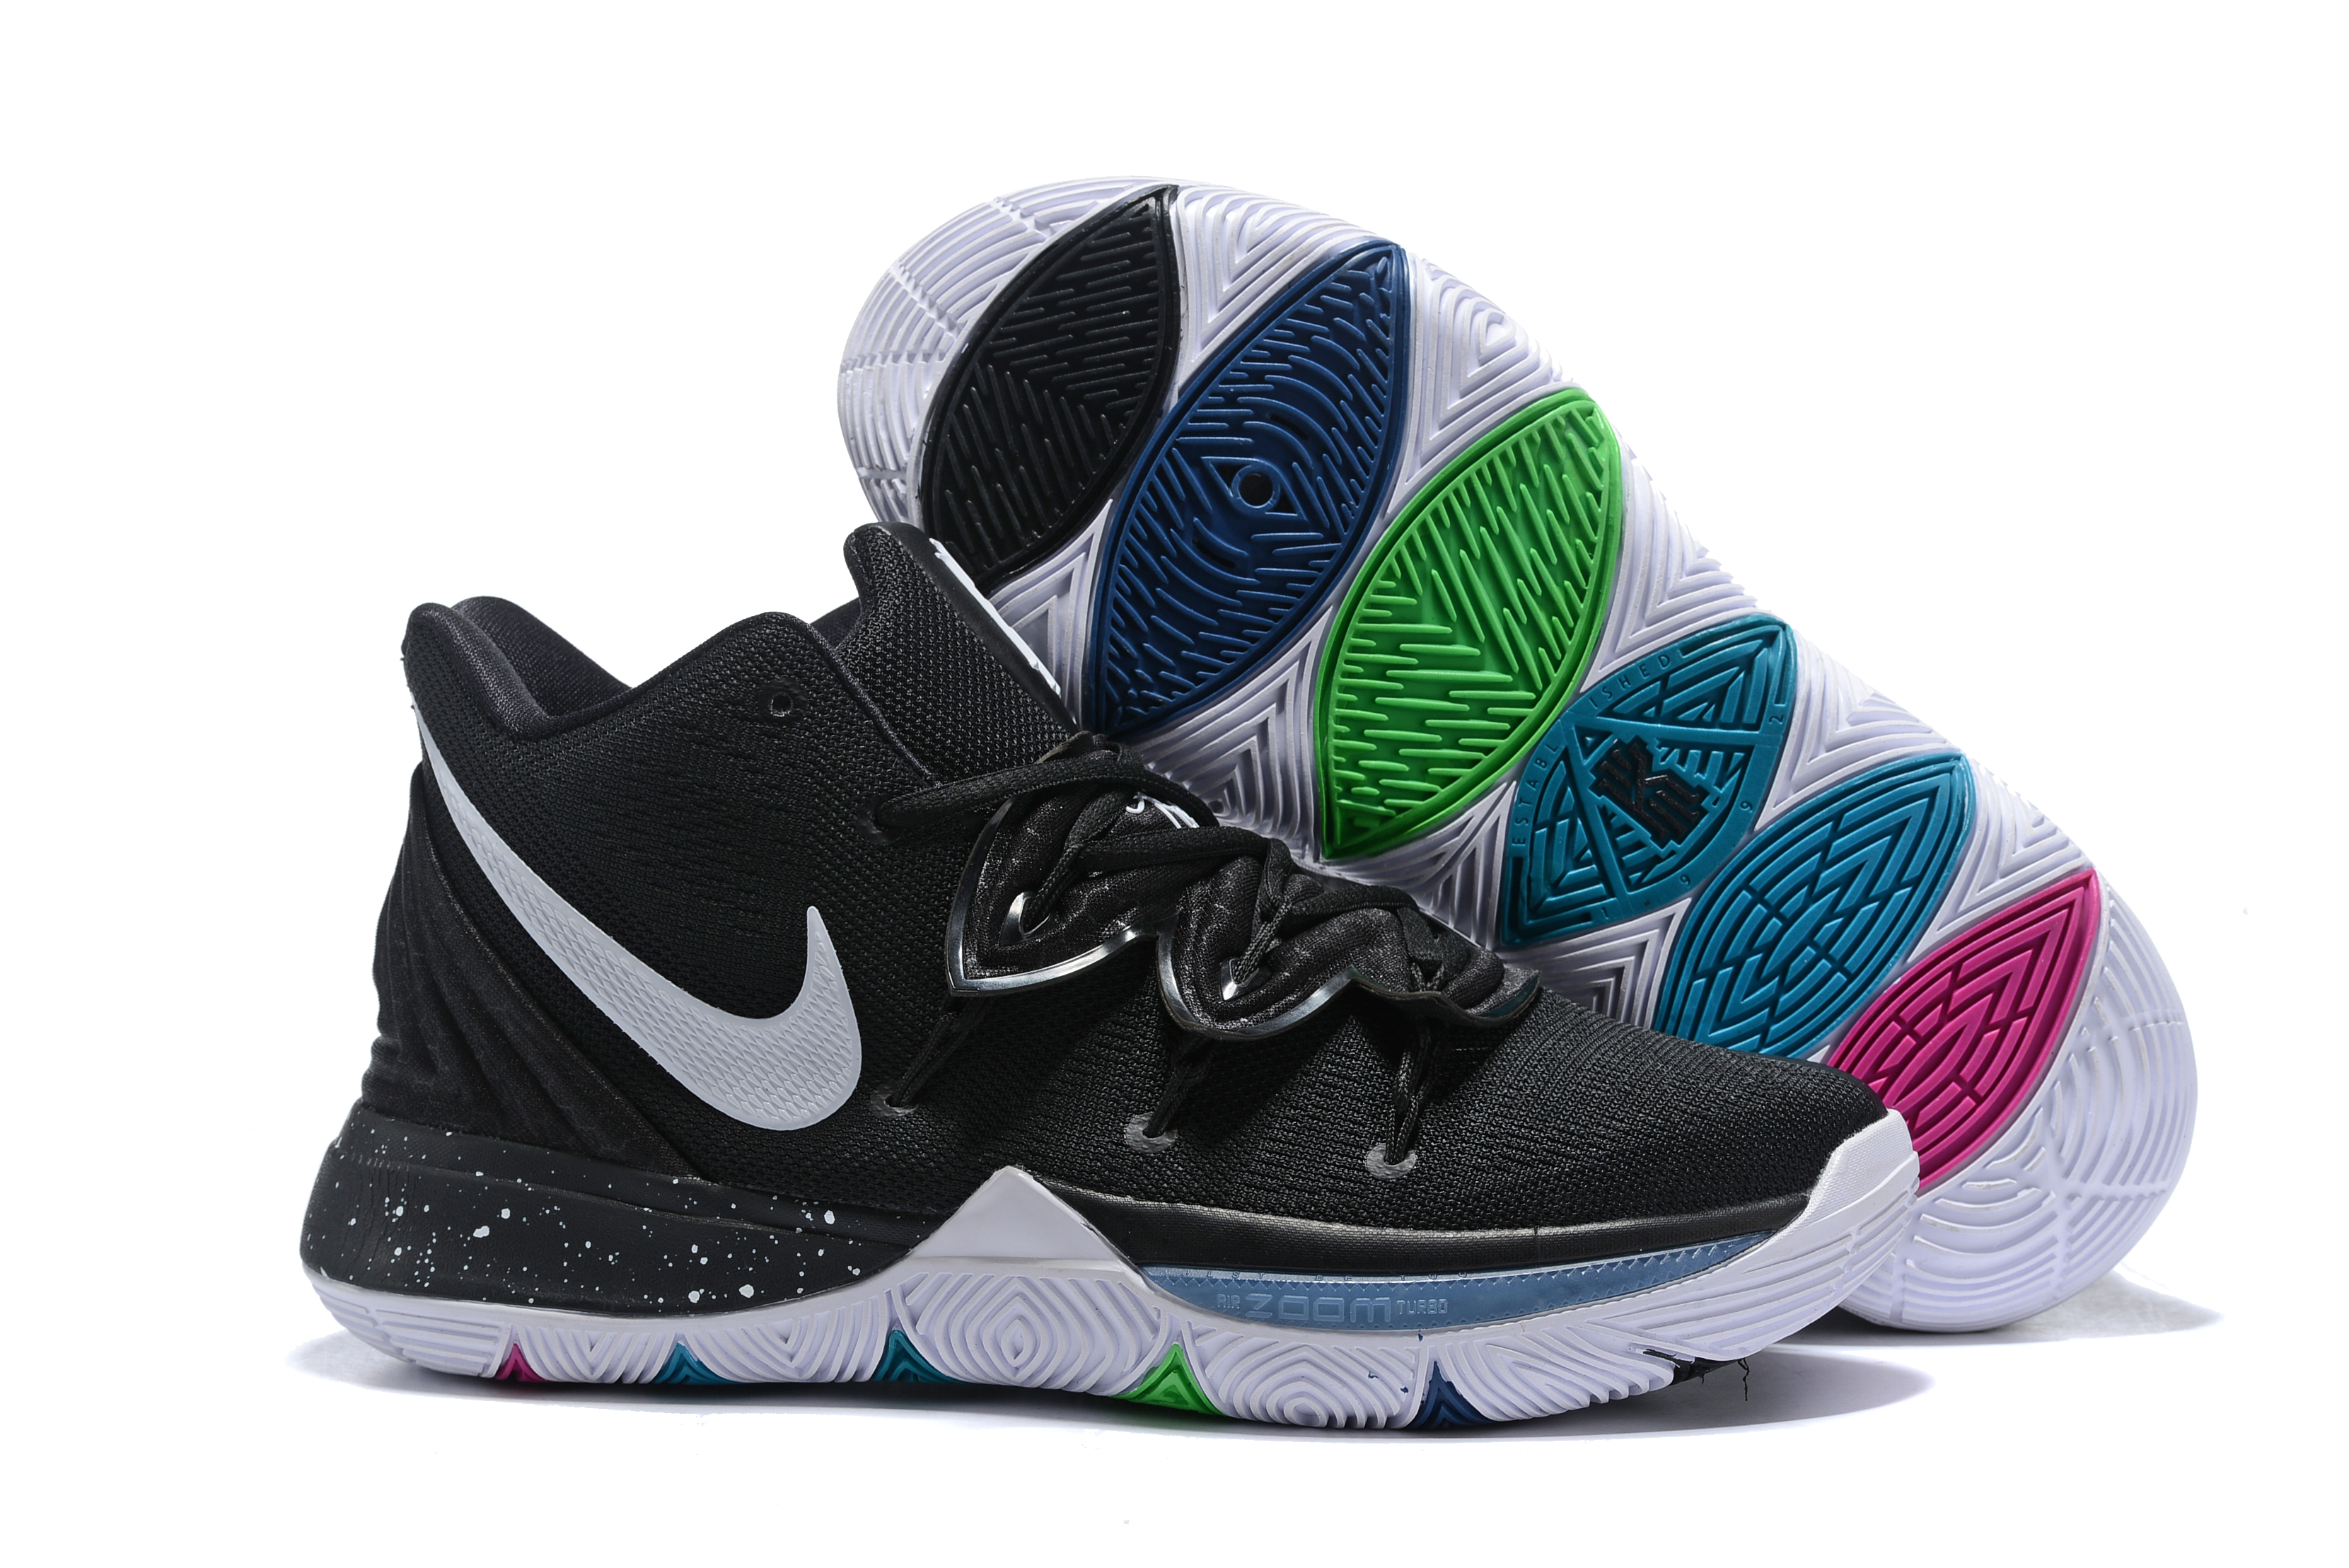 Nike Kyrie 5 Black White Shoes